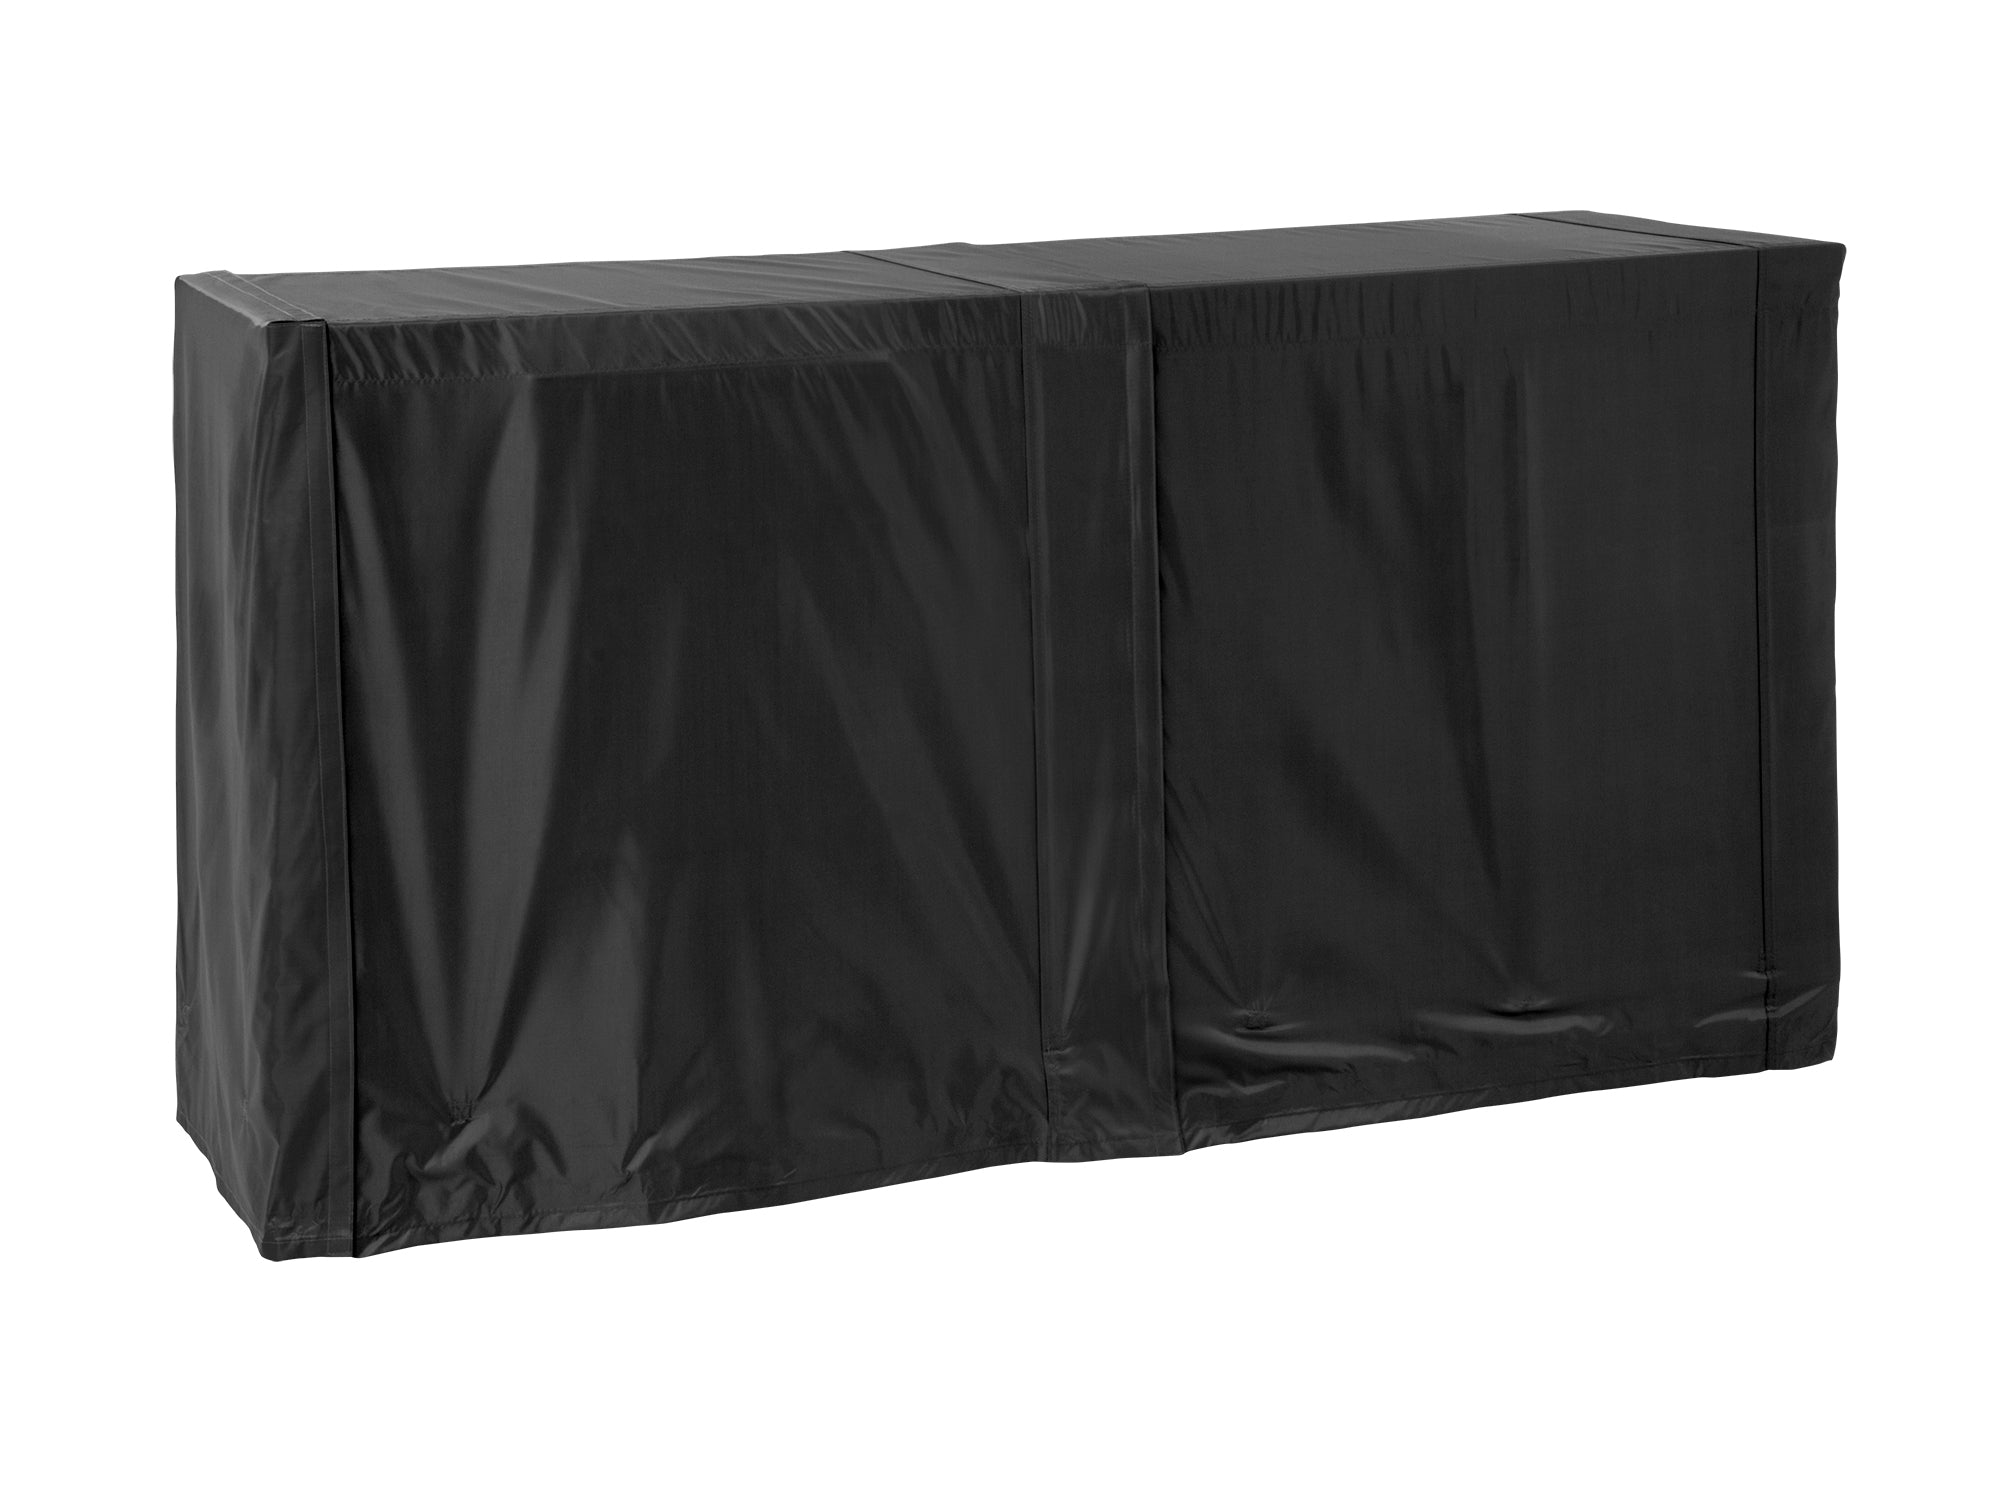 Outdoor Kitchen All-Season Cover Bundle: 96 in. Cover, Right/Left Side Panel Covers